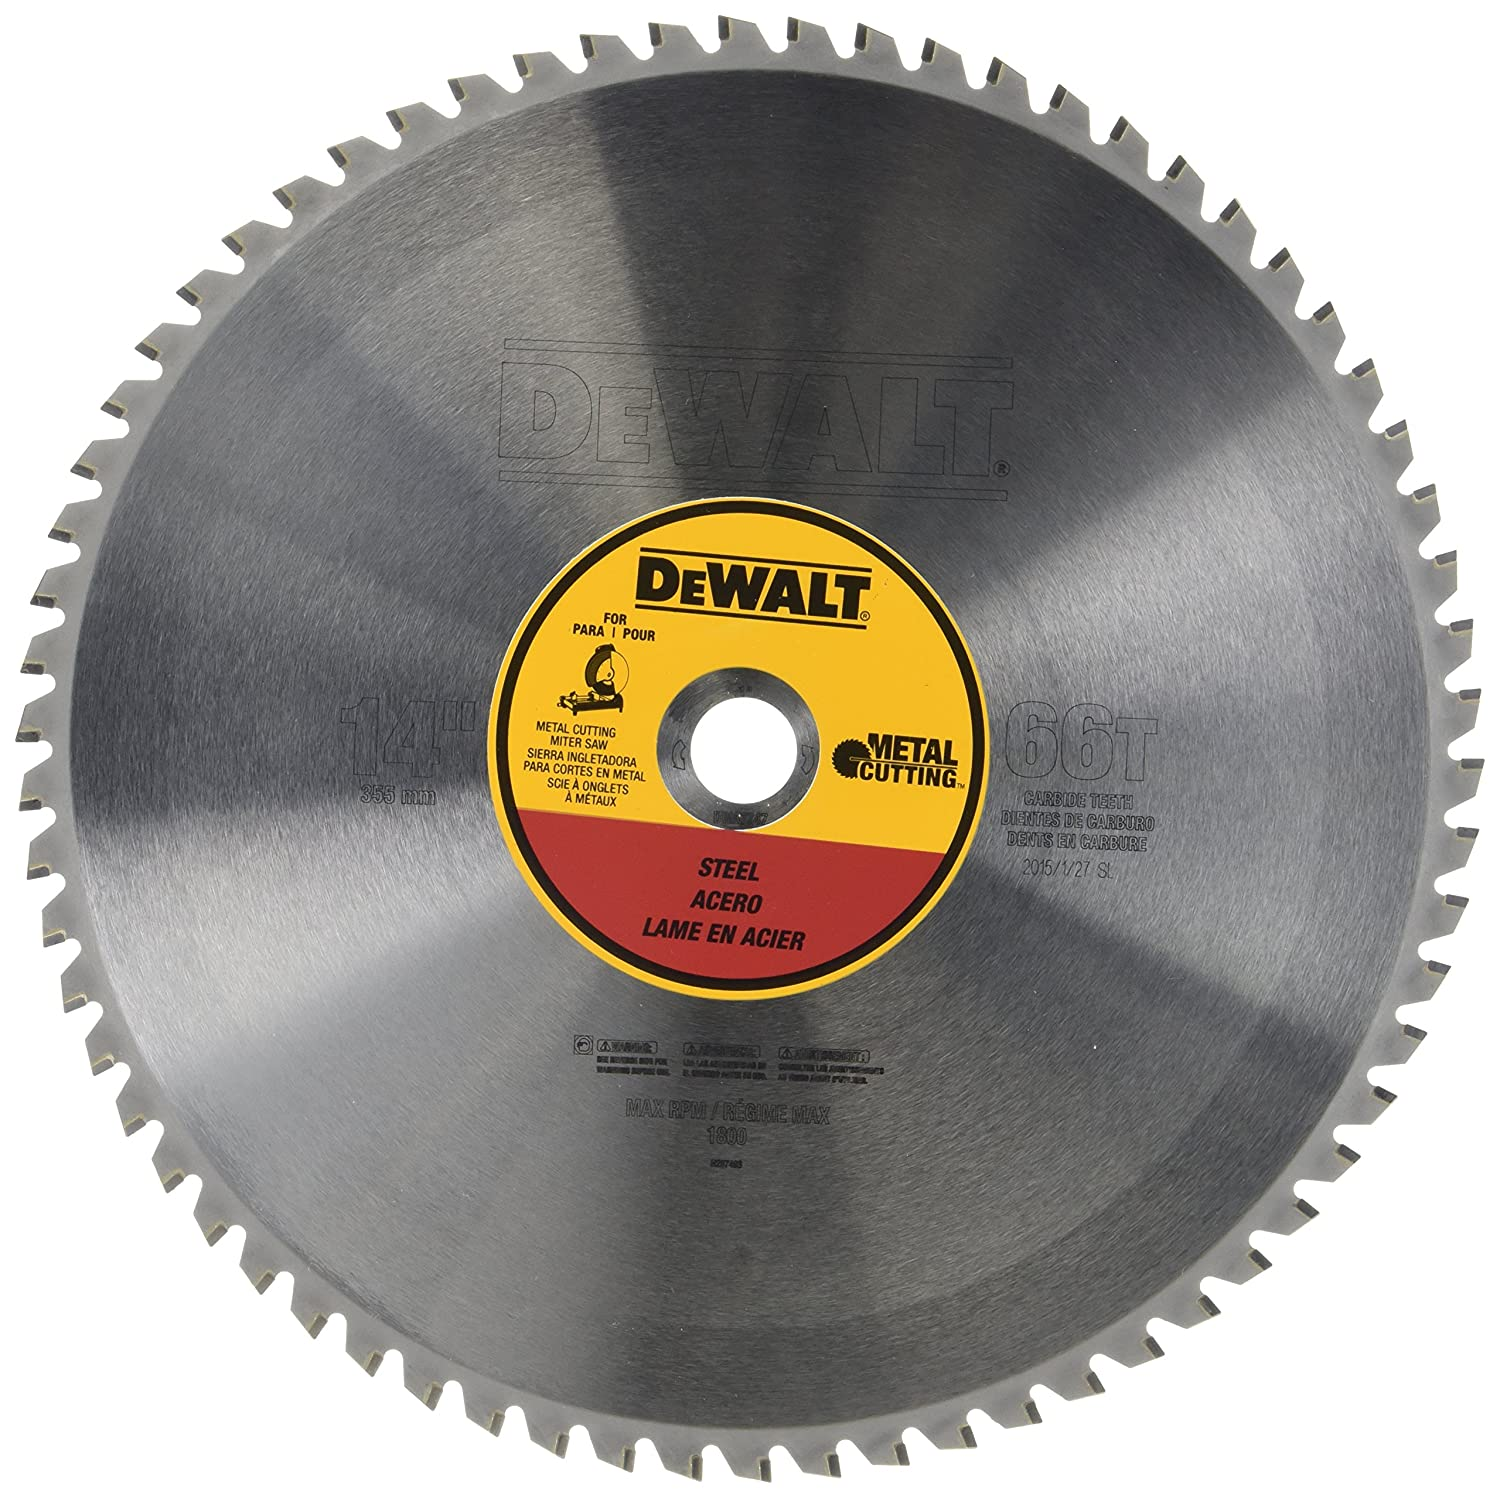 Dewalt dwa7747 66 teeth heavy gauge ferrous metal cutting 1 inch dewalt dwa7747 66 teeth heavy gauge ferrous metal cutting 1 inch arbor 14 inch jig saw blades amazon keyboard keysfo Images